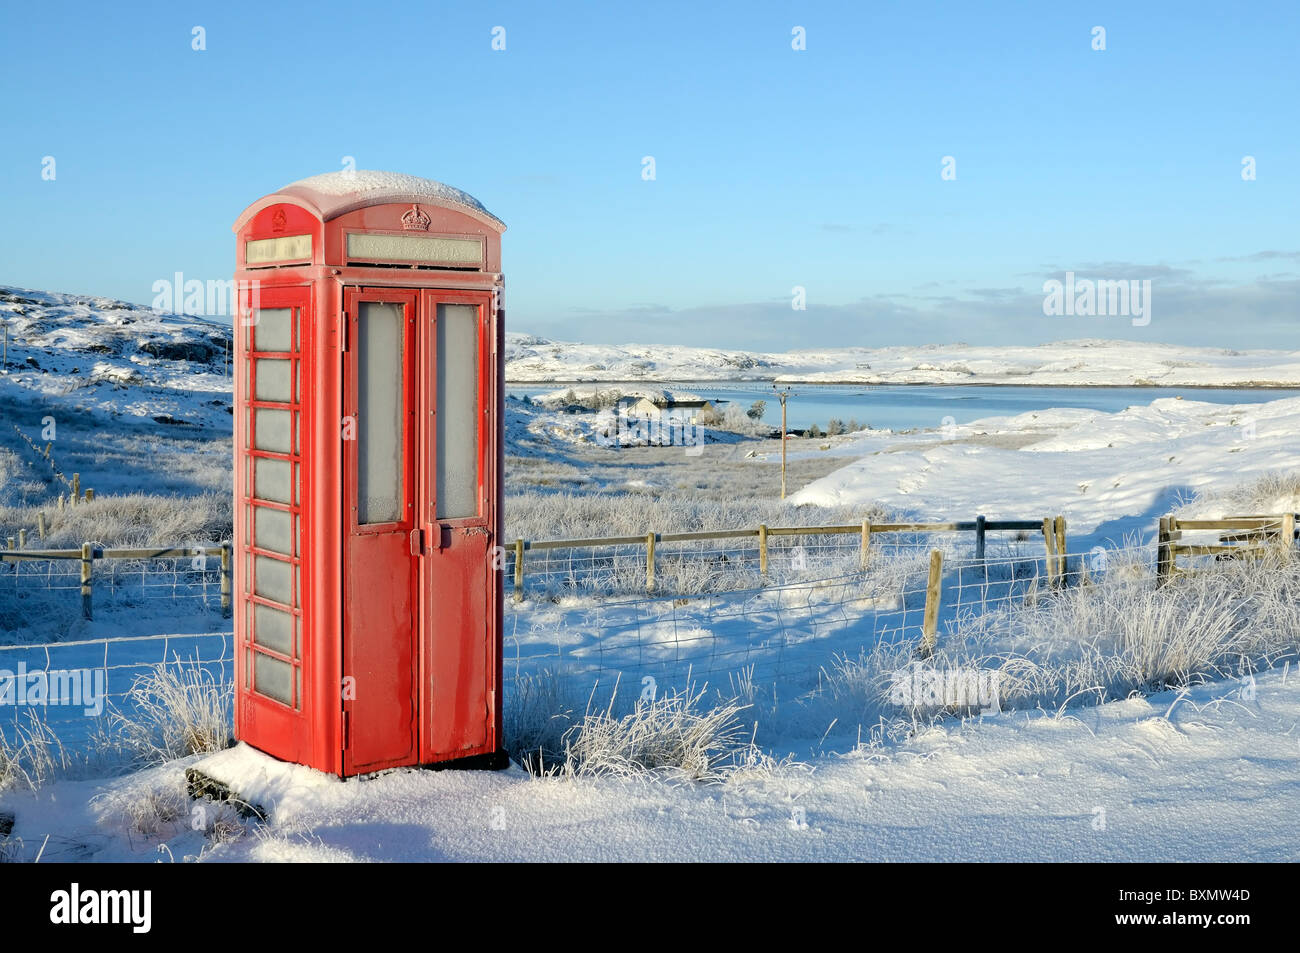 Old style red UK phone box in a rural setting in snow - Stock Image